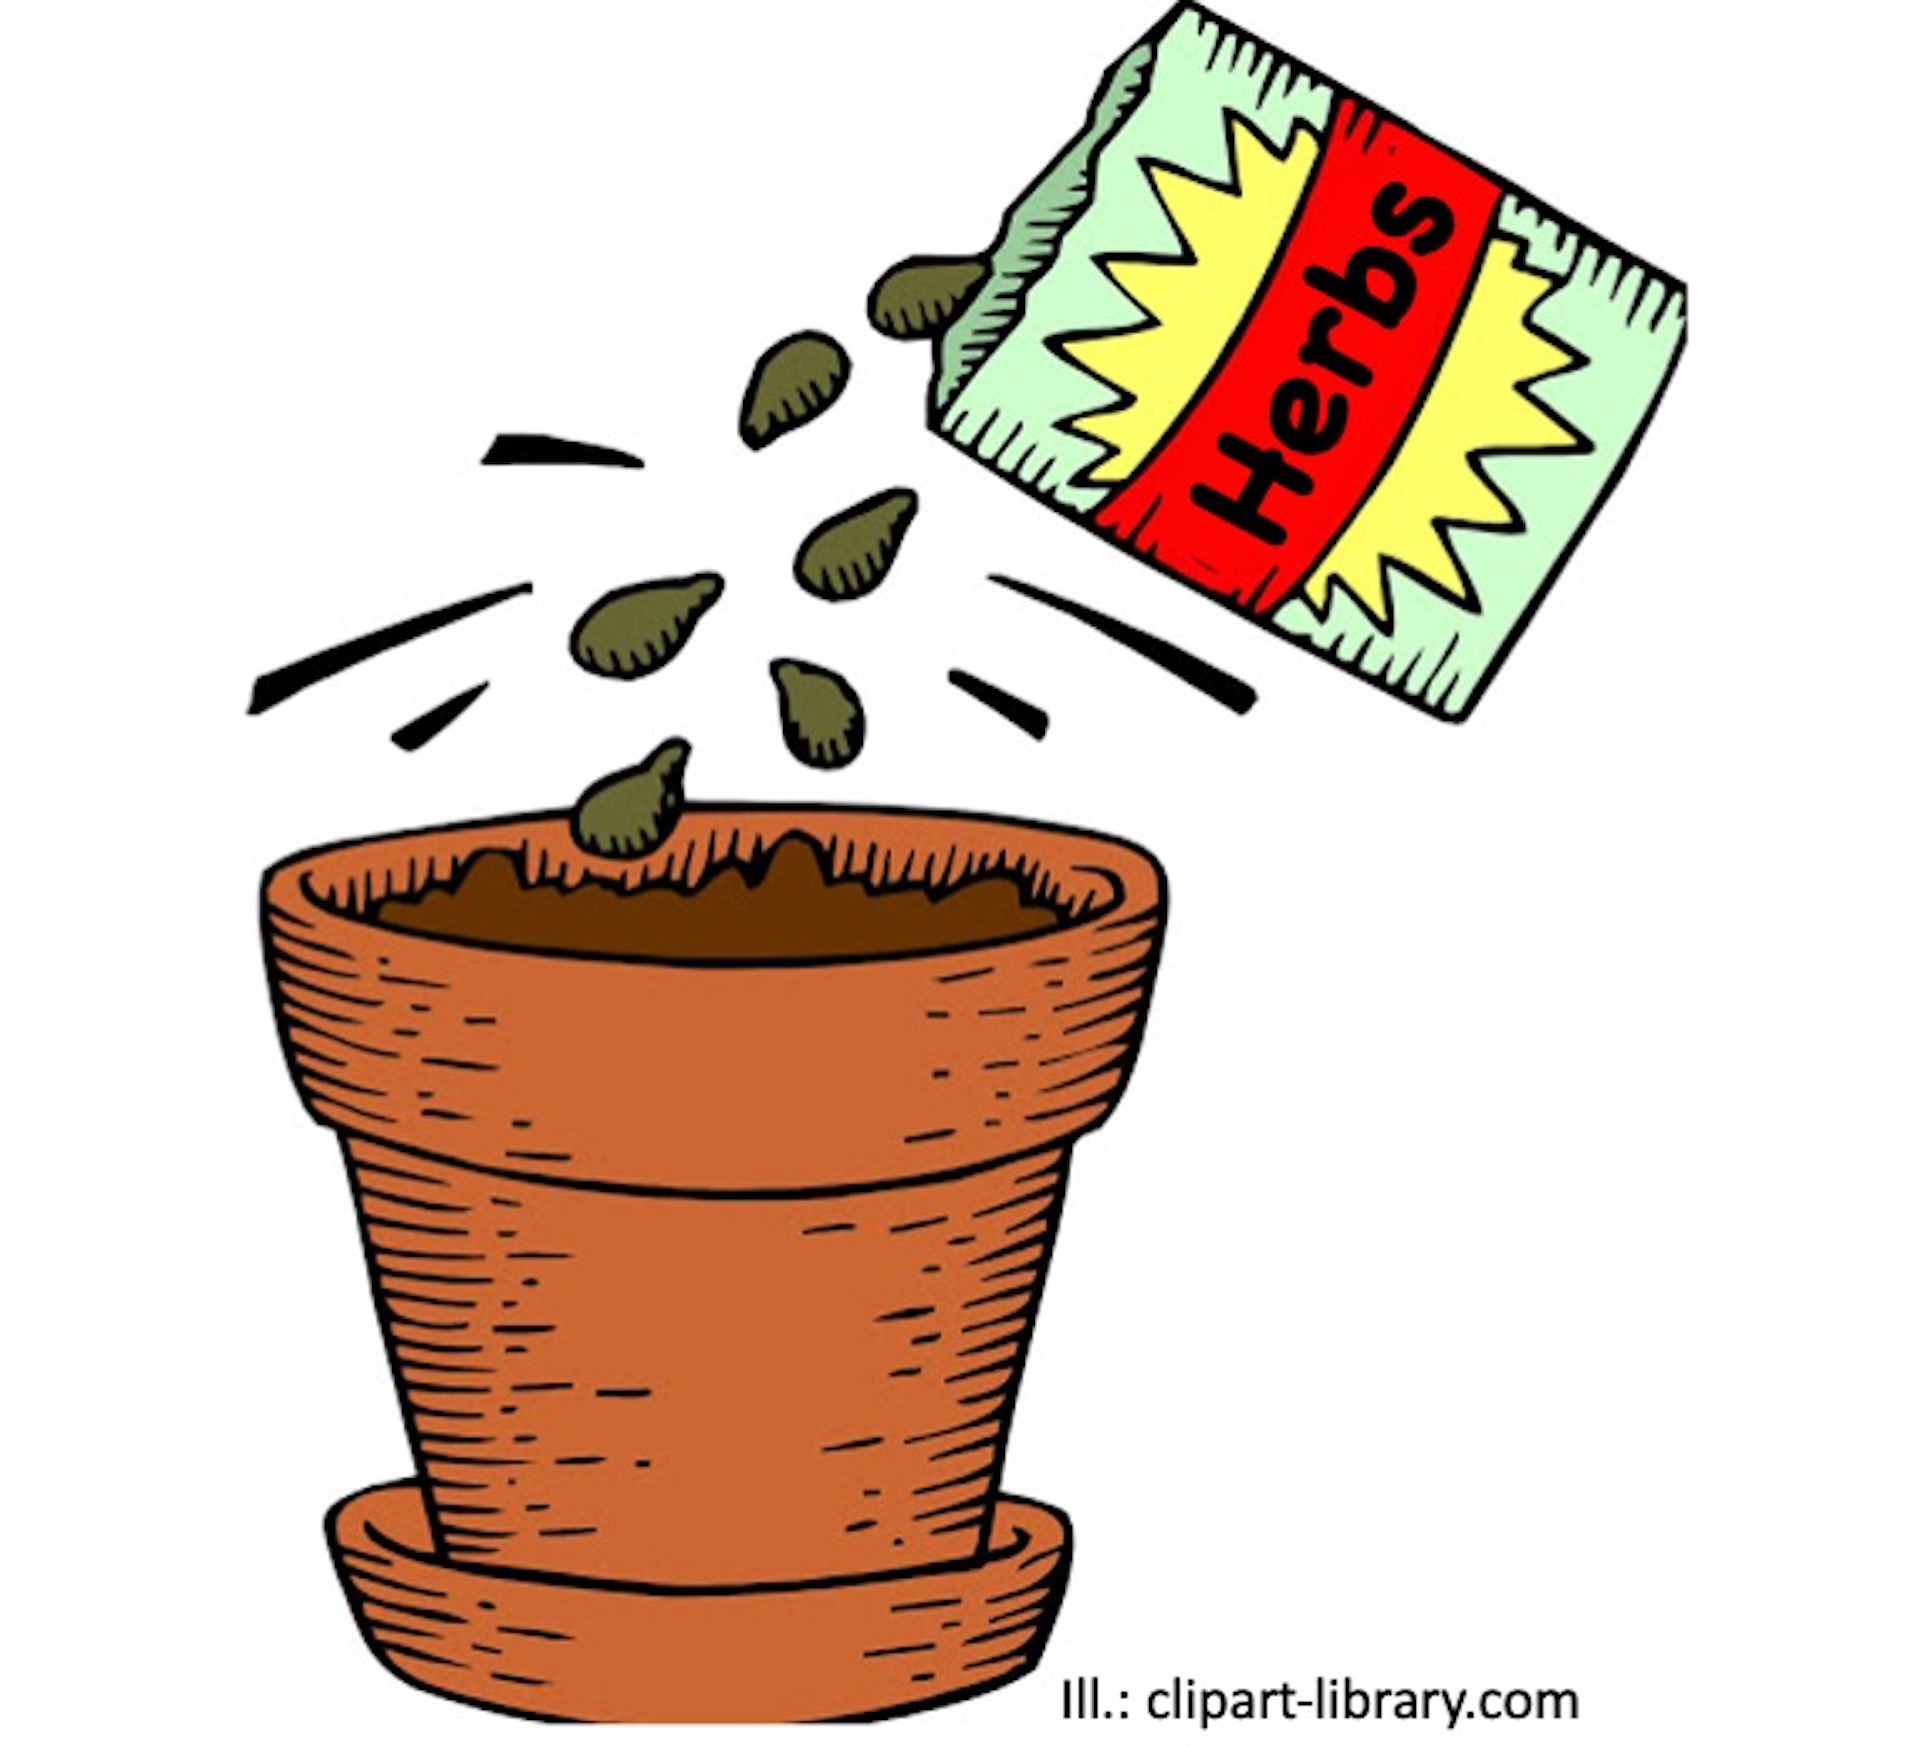 Illustration showing a seed packet labelled herbes pouring seeds into a pot.